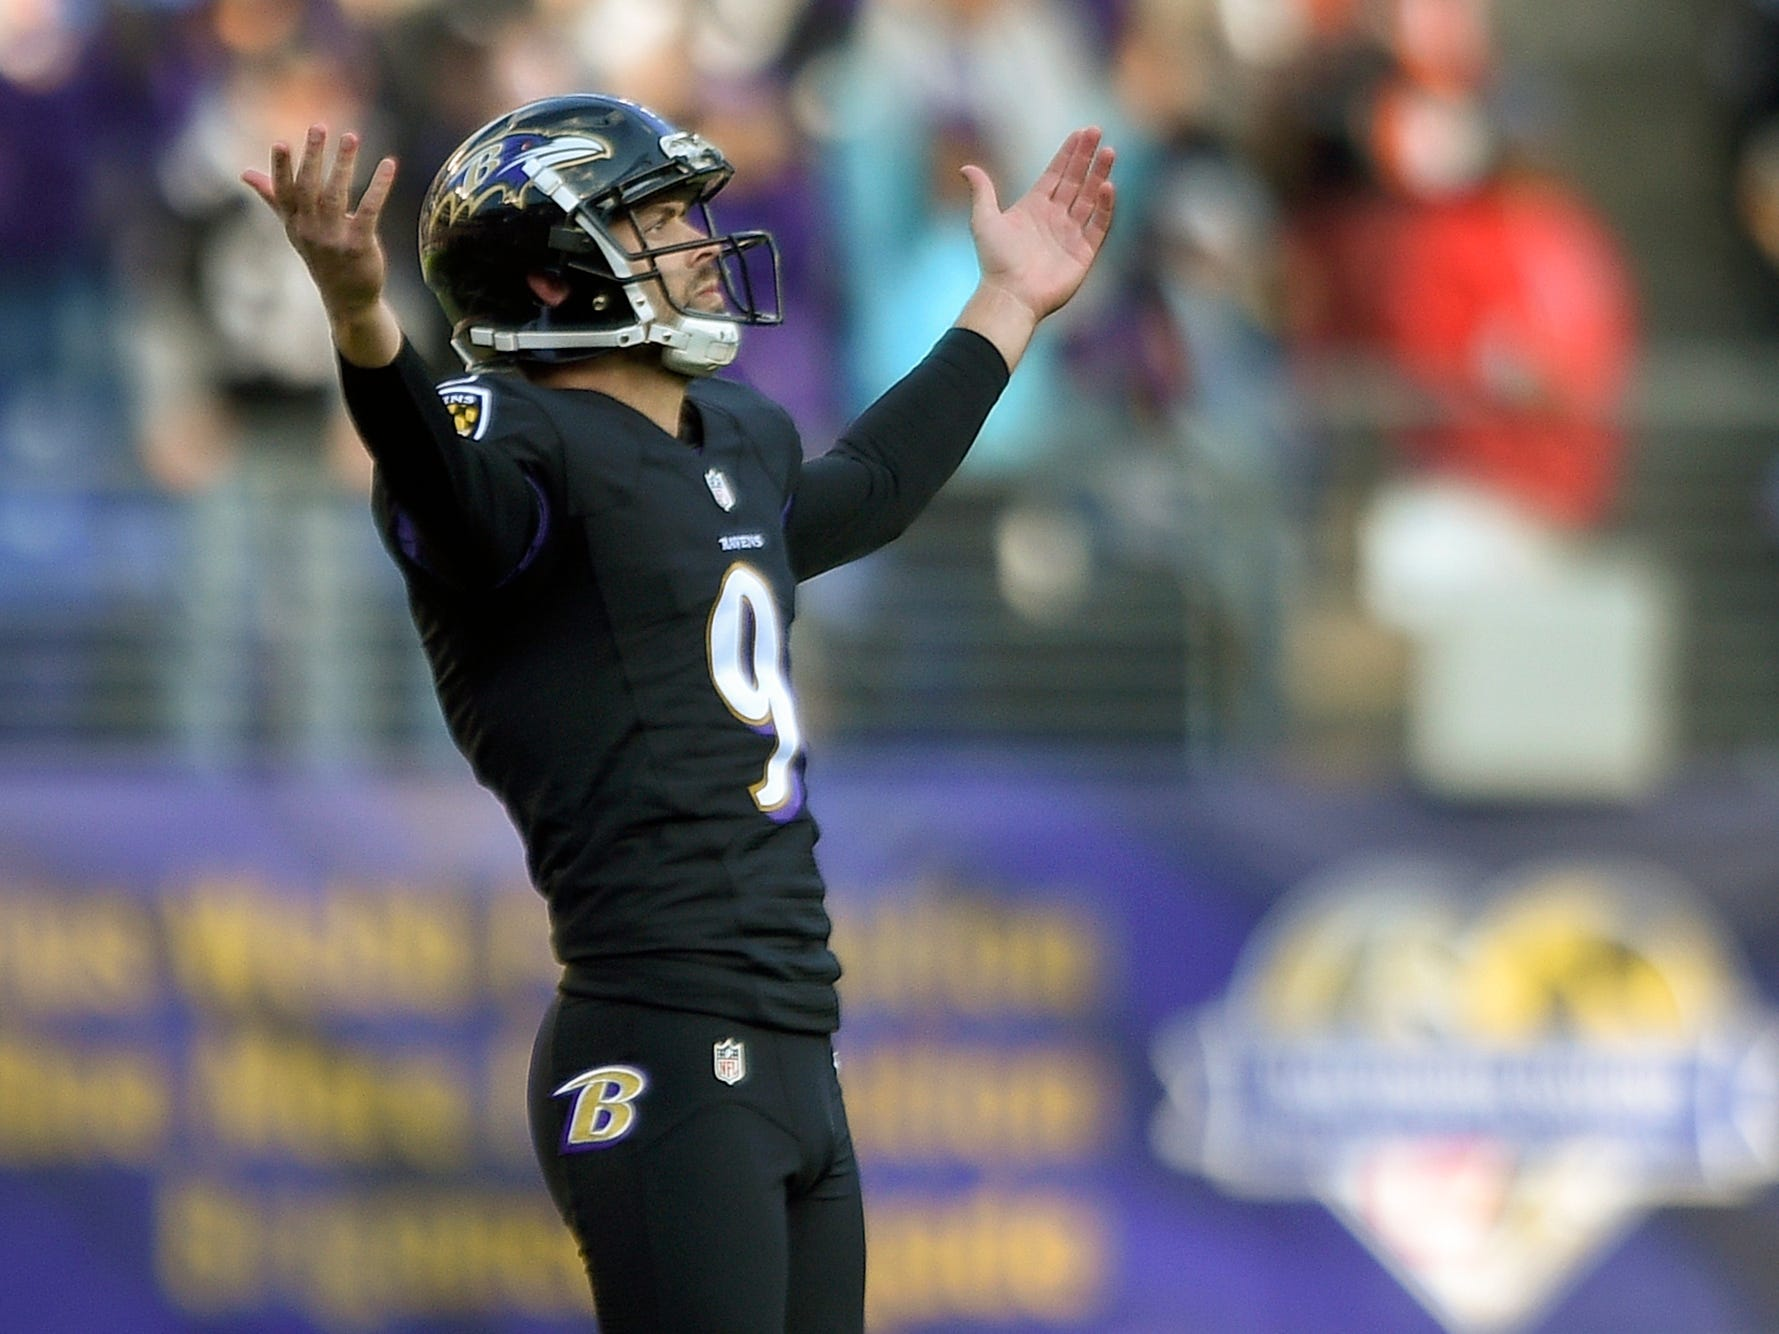 Ravens Tucker gets a kick out of being perfect